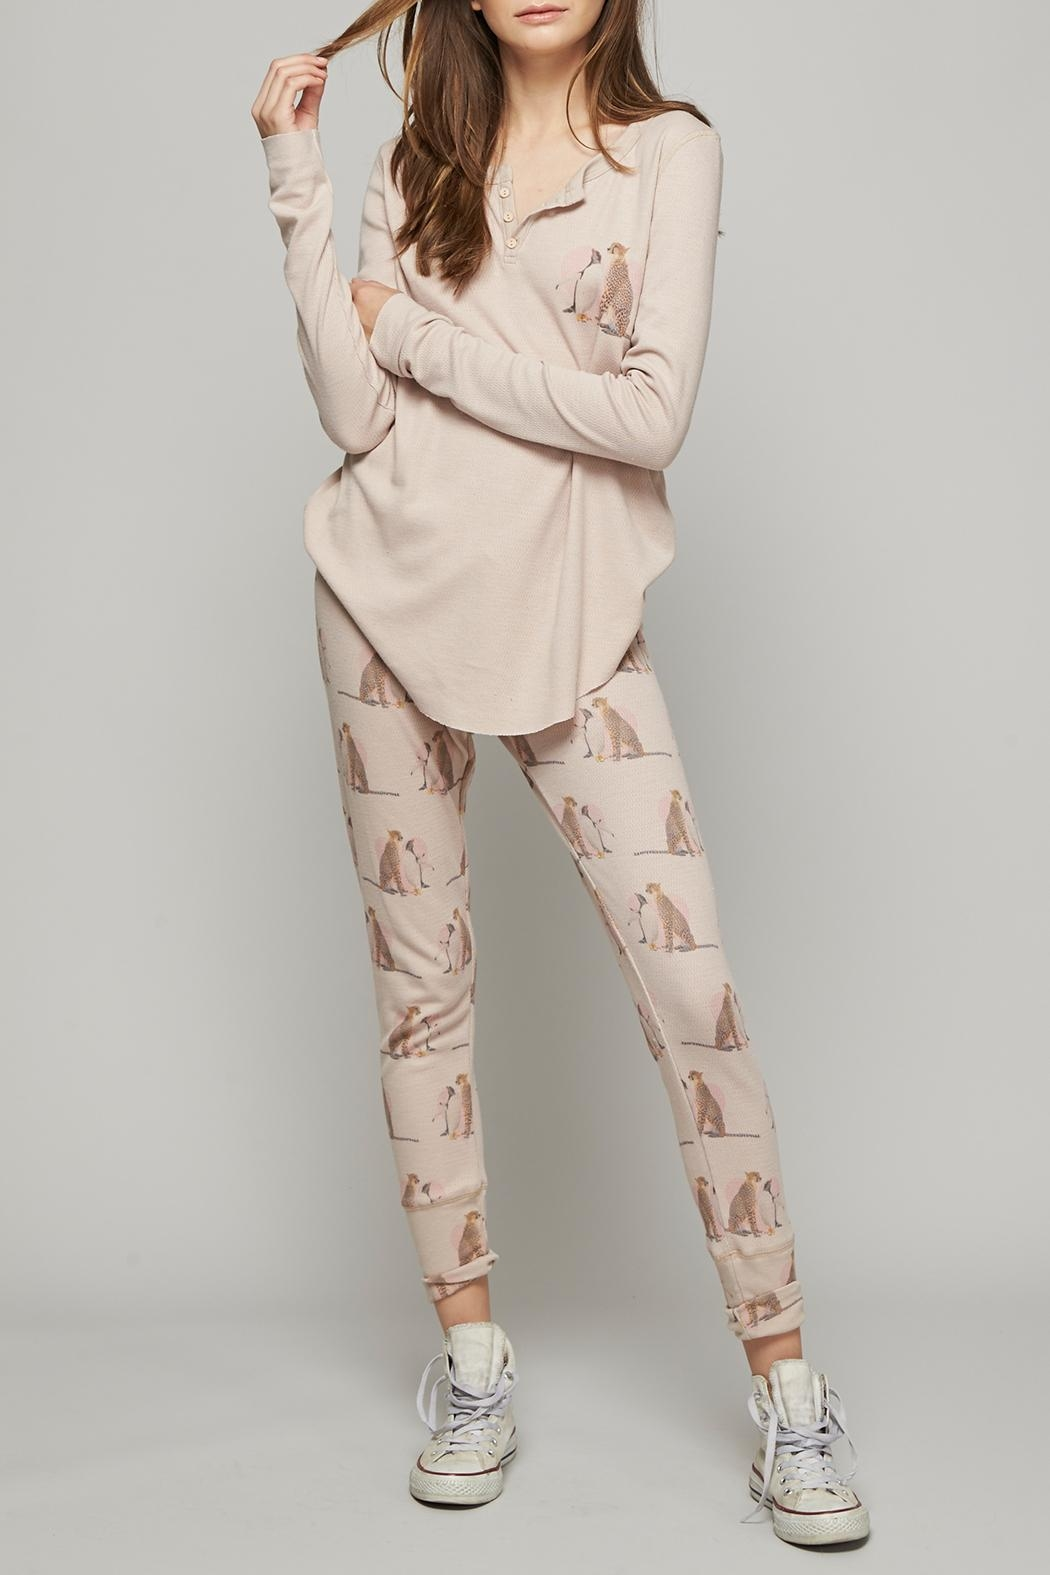 All Things Fabulous Lovers Thermal Pants - Front Cropped Image